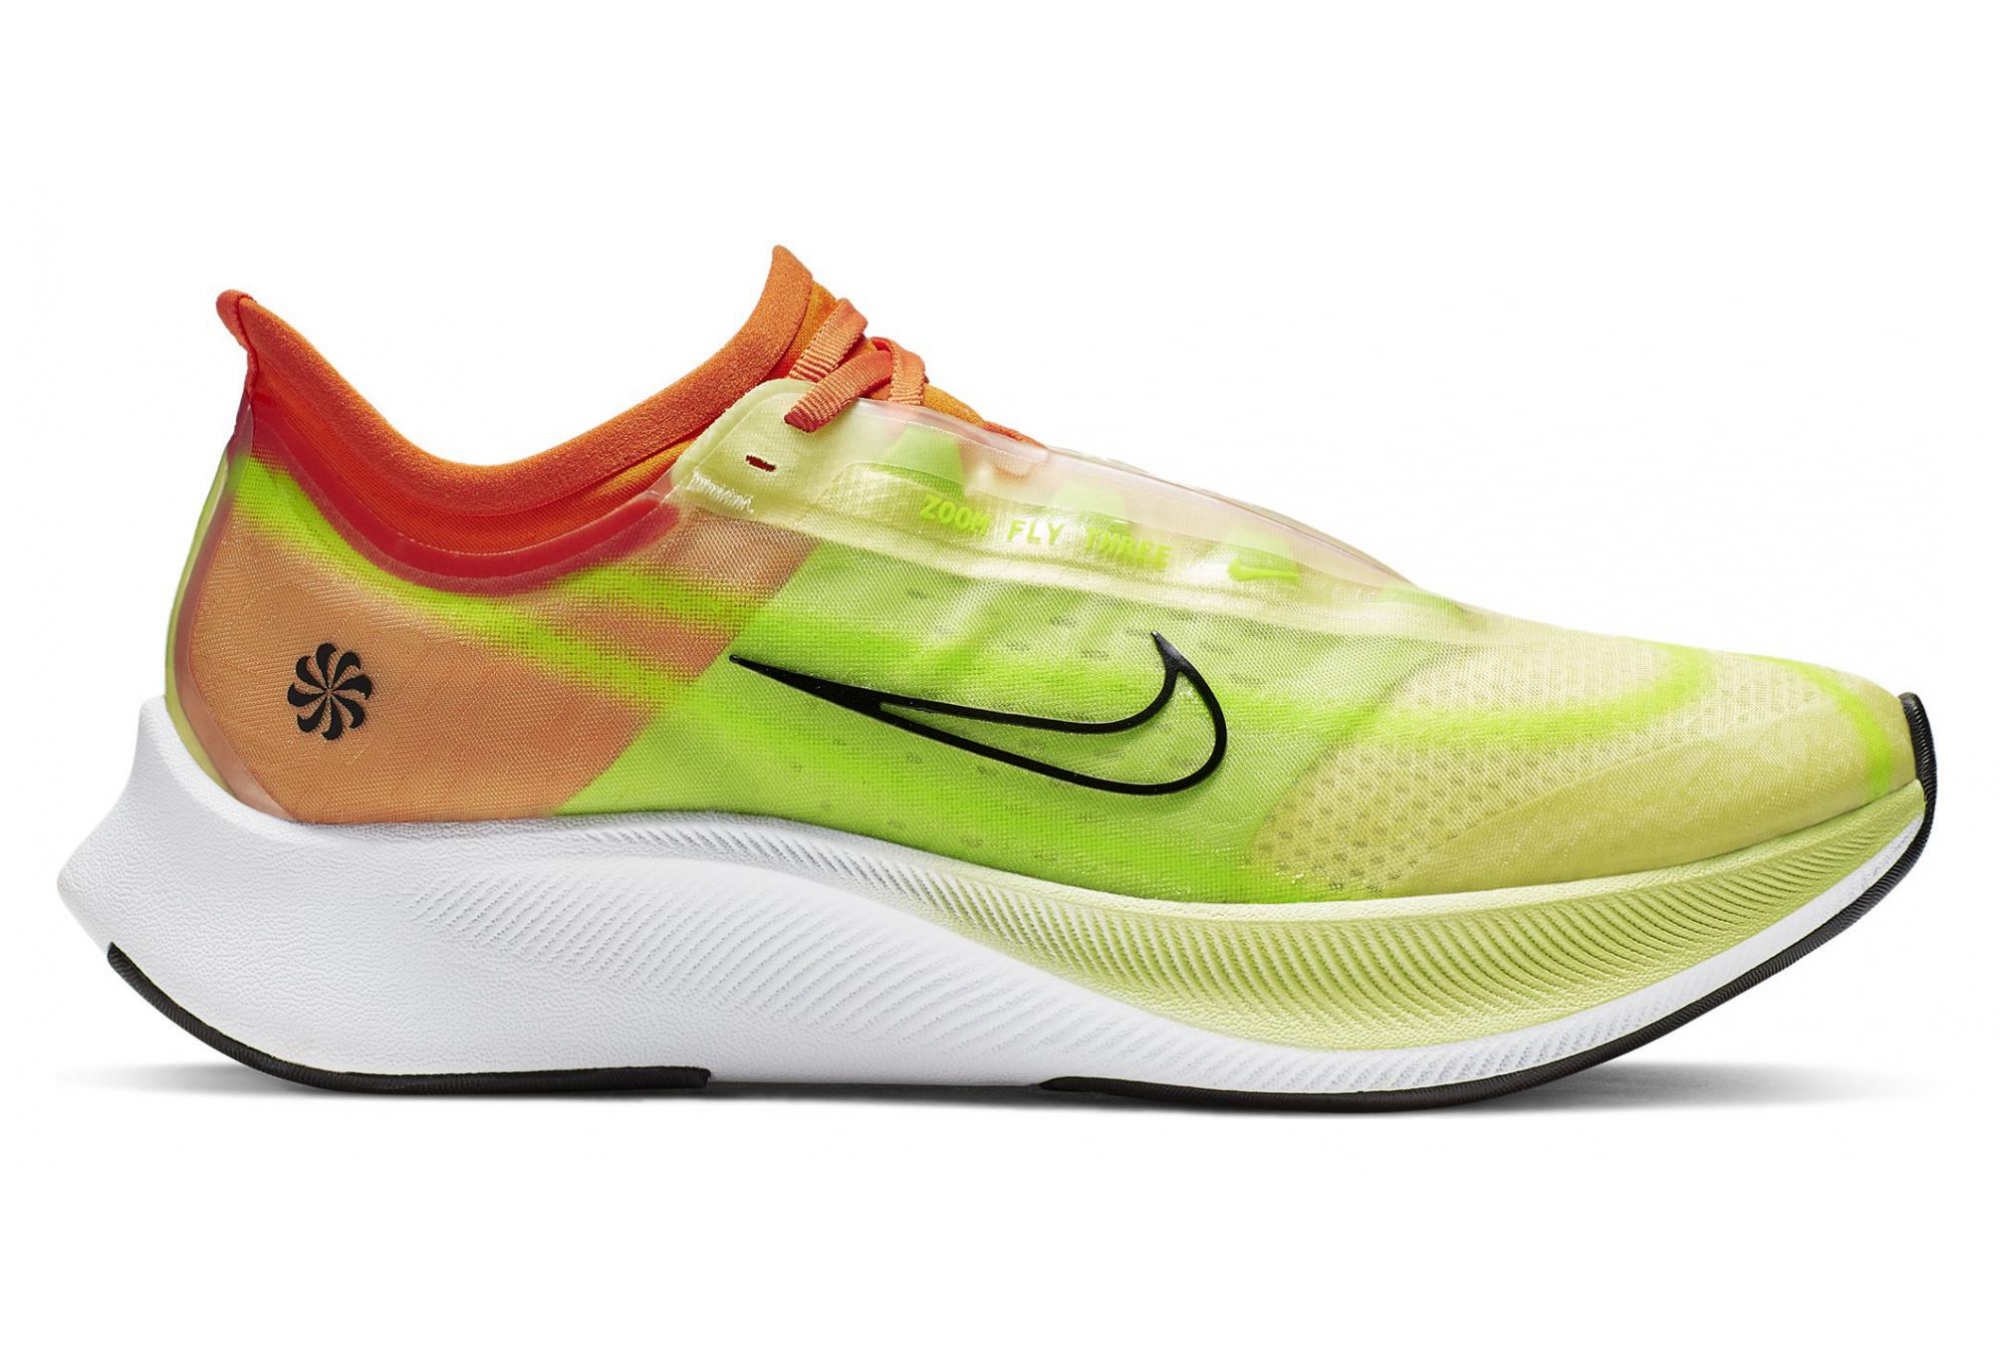 speical offer top brands best quality Chaussures de Running Femme Nike Zoom Fly 3 Rise Jaune / Orange ...